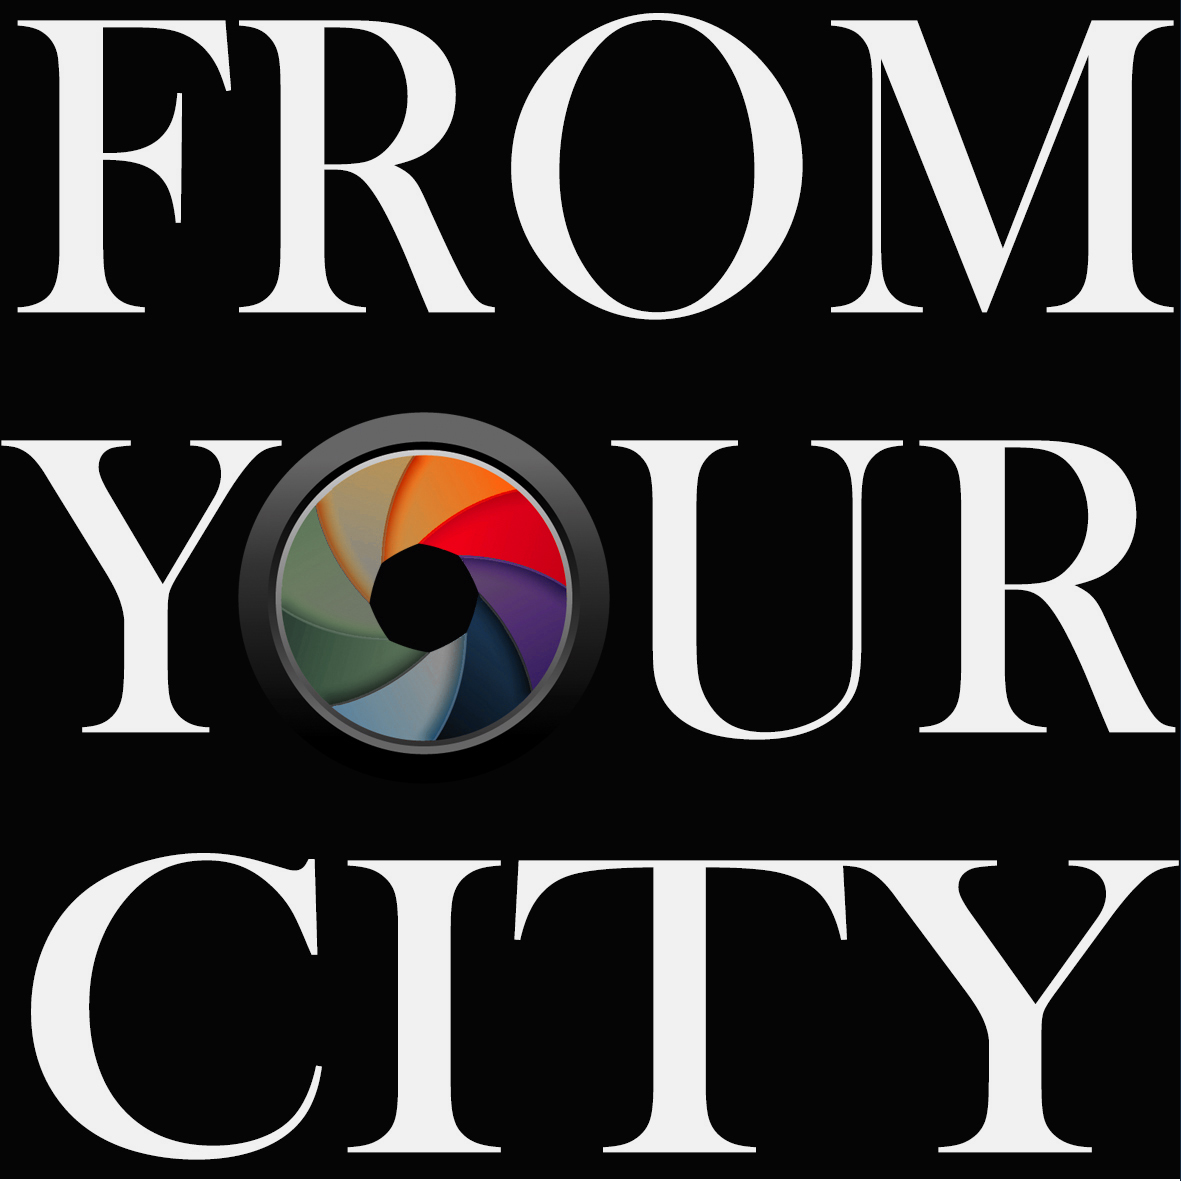 Logo_From_Your_City_au_Carré_en_partie_Desaturé.jpg